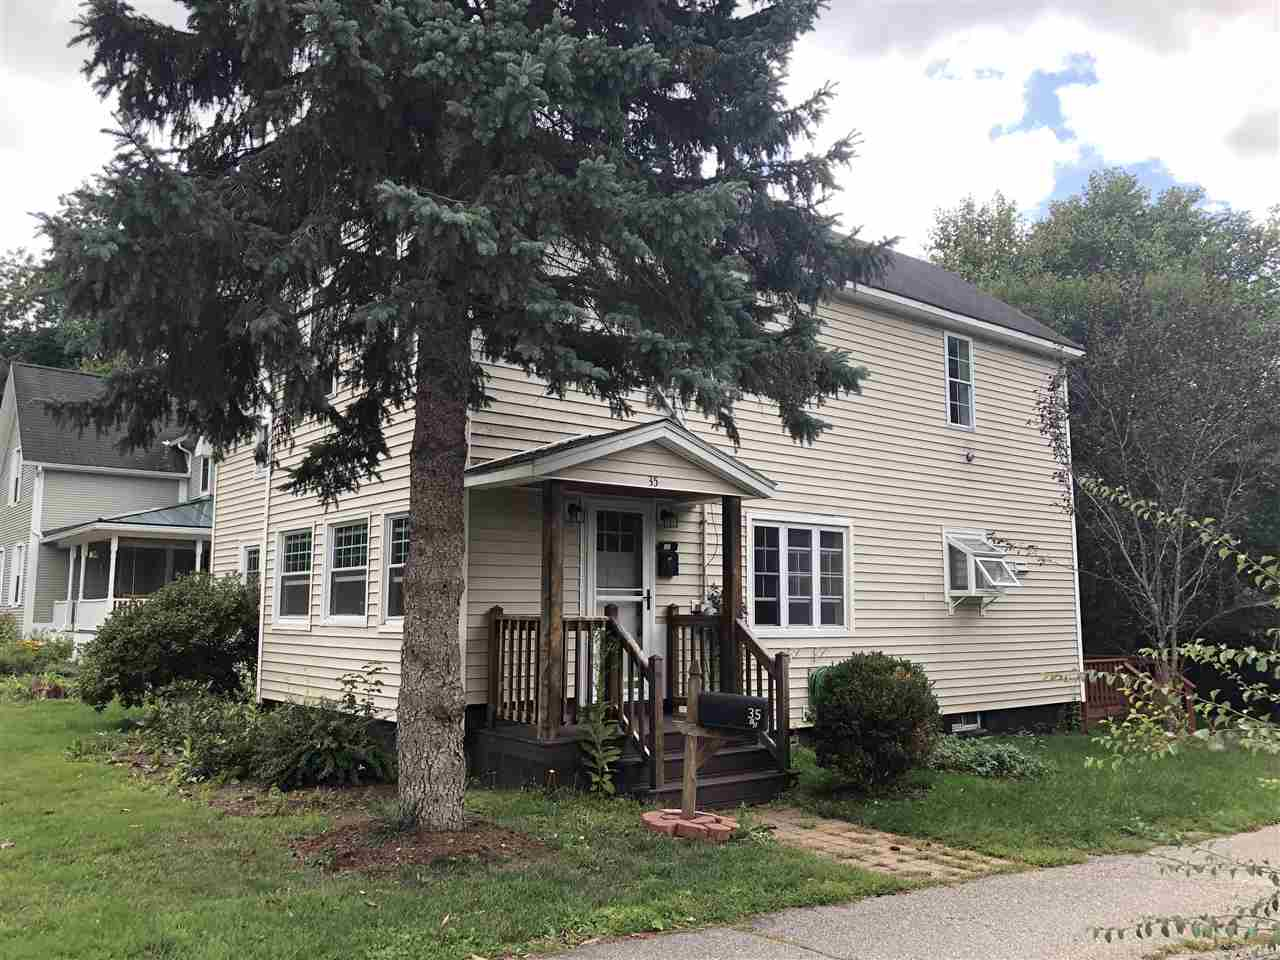 Tremendous investment opportunity located in the heart of Essex Junction.  The main house has 4 bedrooms, and 2 full baths on two levels, as well as a full basement.  The kitchen was renovated in 2012 with custom cabinets, new stove and refrigerator. The basement is equipped with washer/dryer units purchased two years ago, and there is a partially finished basement store room.  The large back deck is great for family gatherings! The neighborhood is family friendly and quiet, conveniently located within walking distance of Maple Street Park. The Accessory Cottage has 625 sq feet of living space with 15' ceilings, with large loft area. The full basement has 9' ceilings.  The cottage has a separate fenced in yard. Beautiful river birch trees and ornamental willows create a secluded atmosphere of tranquility. Located minutes from Global Foundries, University of Vermont Medical Center, public transportation, parks, shopping, and 10 minutes from downtown Burlington.